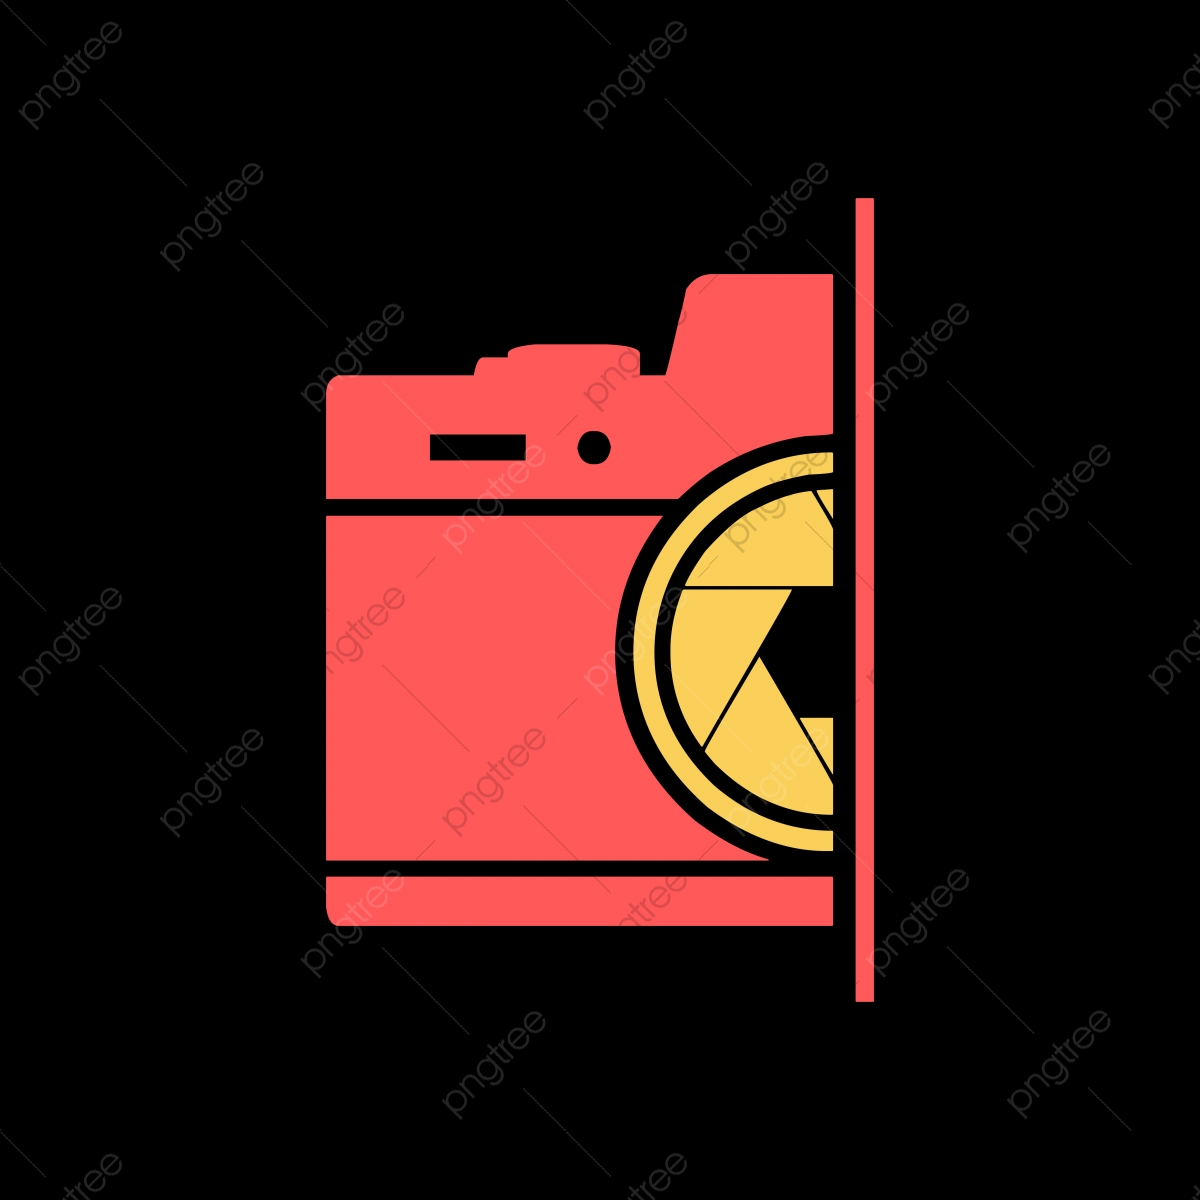 Creative Photography Logo Symbol Icon Vector Design Logo Icons Creative Icons Photography Icons Png And Vector With Transparent Background For Free Download